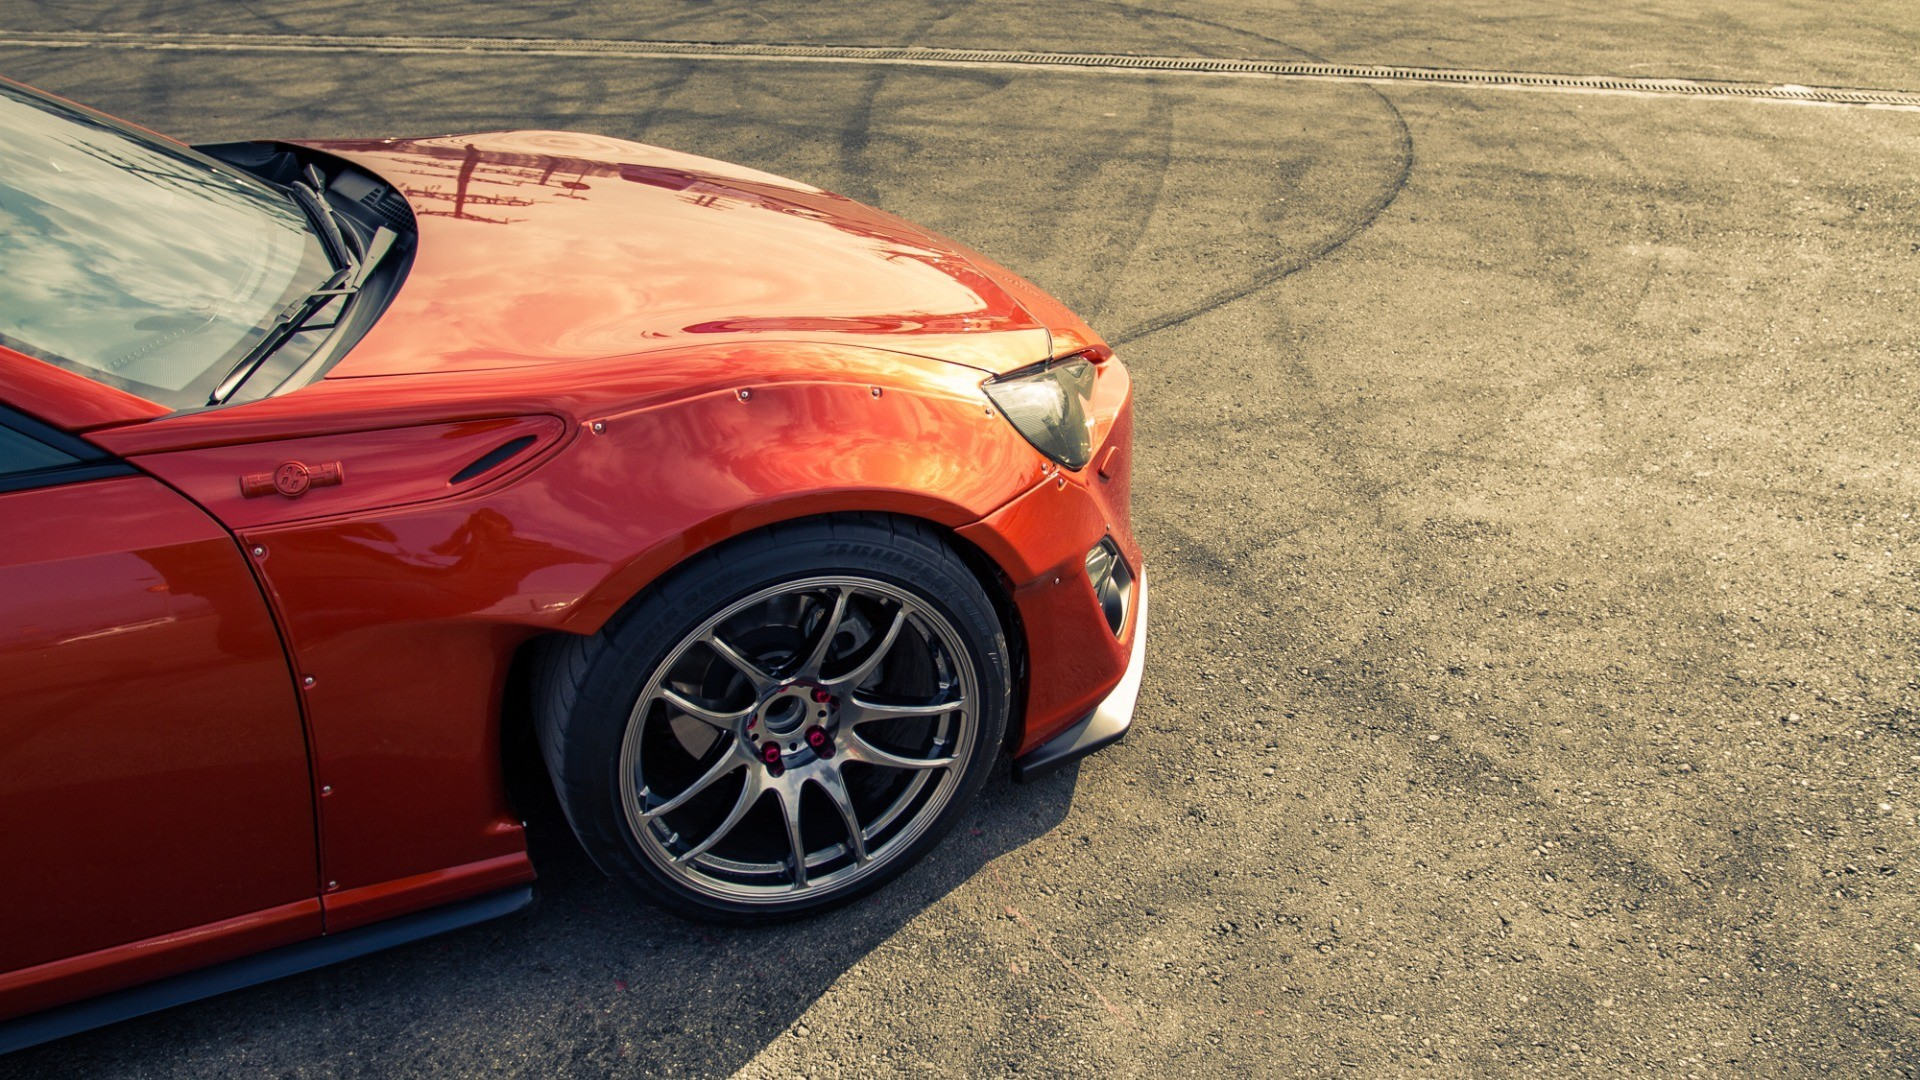 Toyota, Toyota GT86, Rocket Bunny Wallpapers HD / Desktop and Mobile  Backgrounds